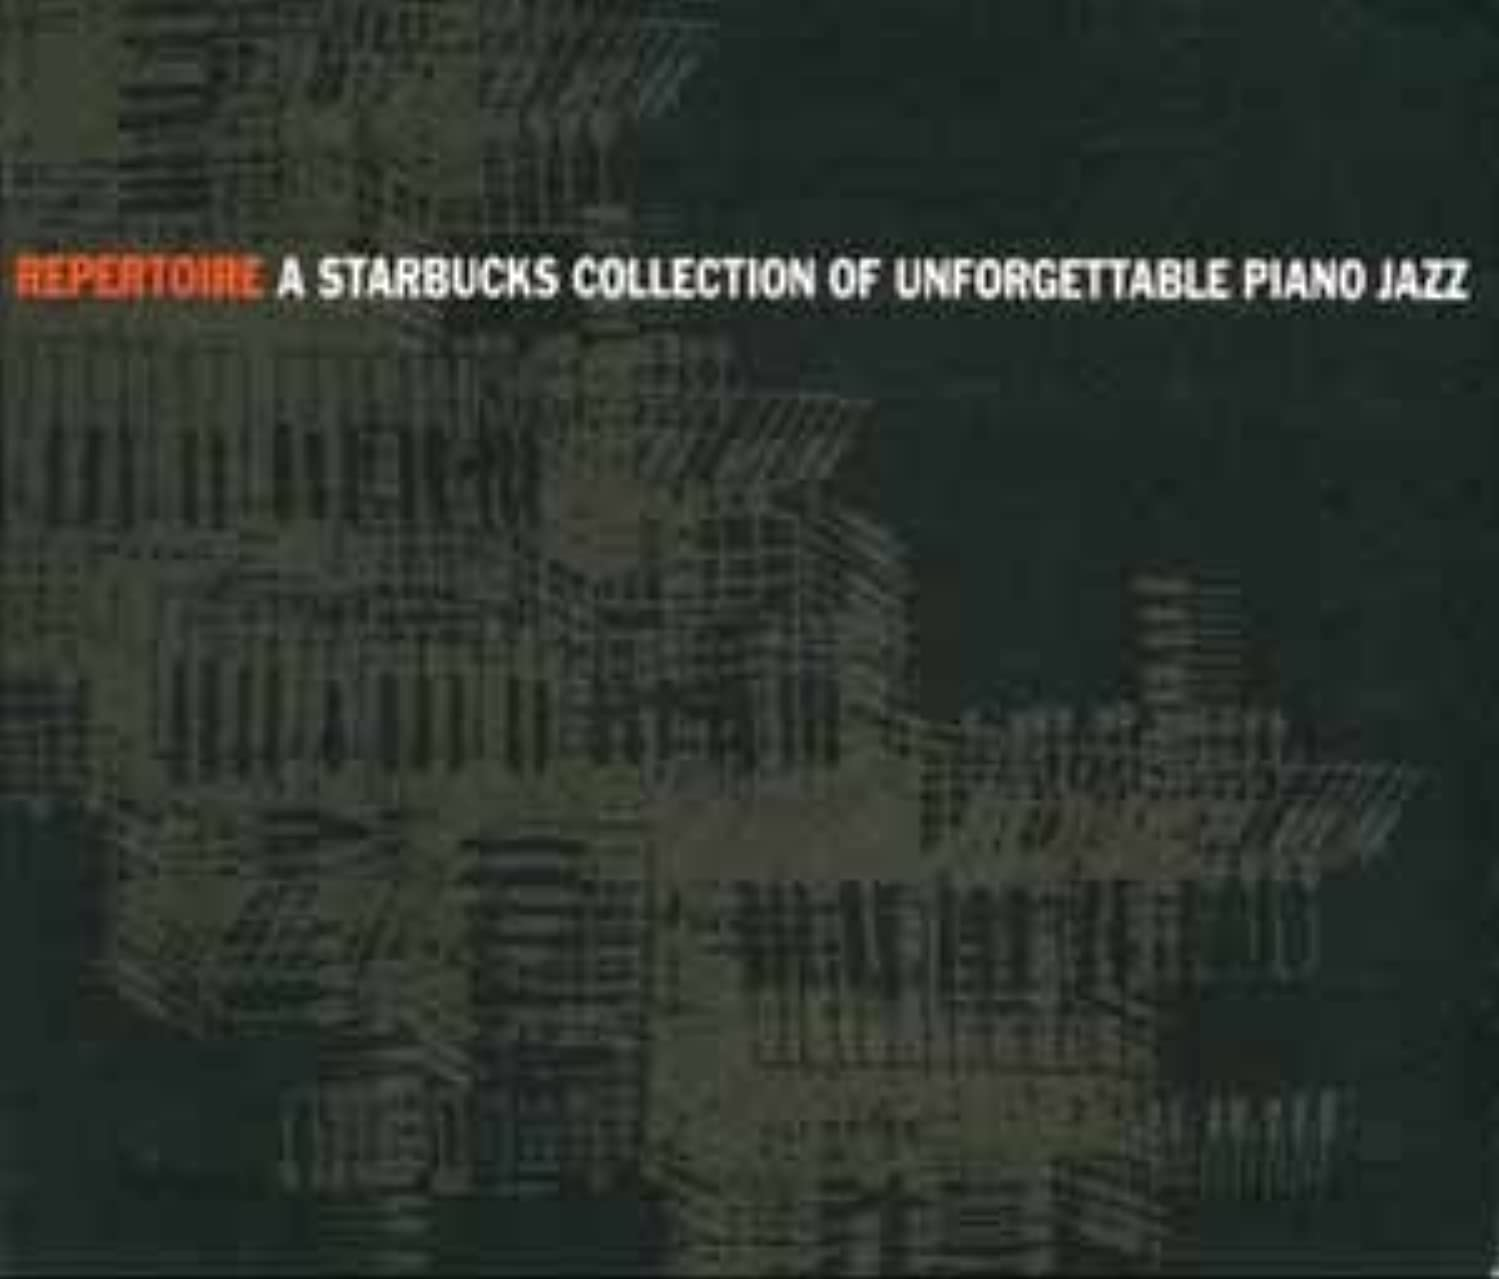 Repertoire A Starbucks Collection of Unforgettable Piano Jazz